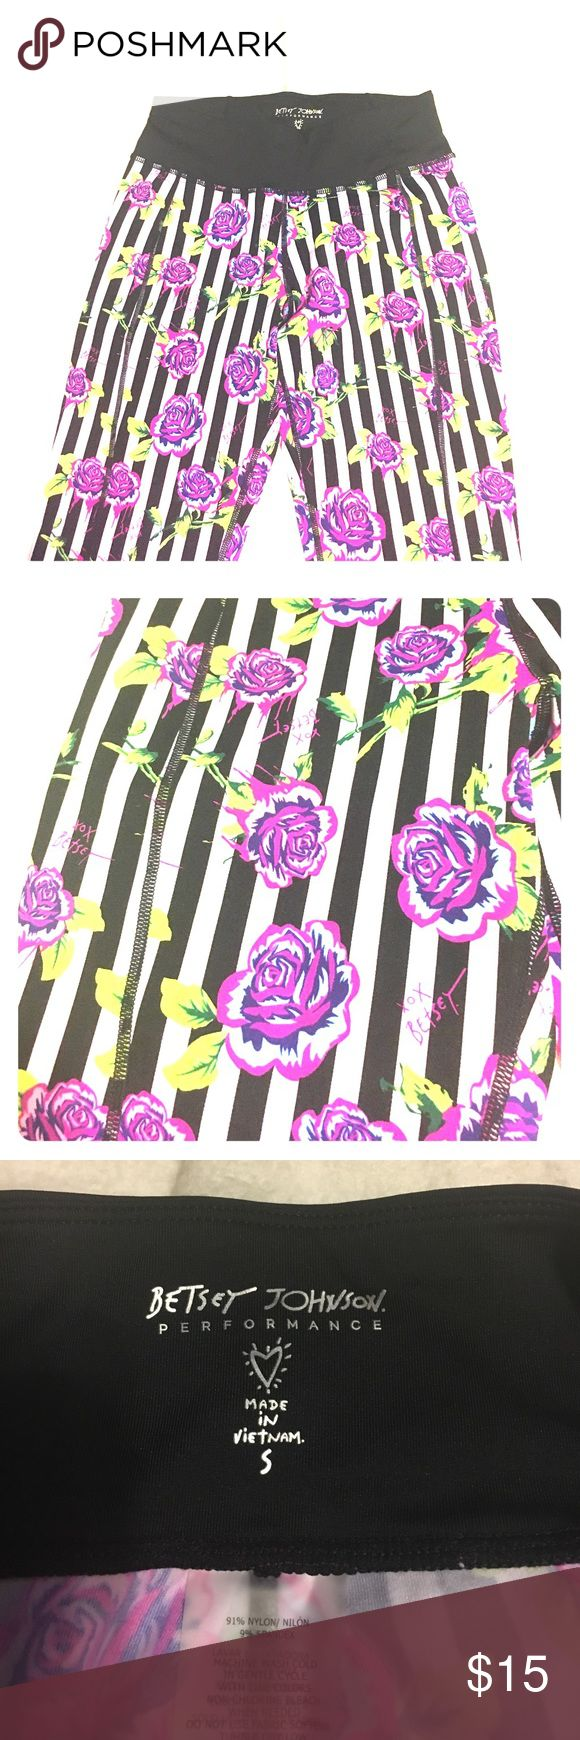 Betsy Johnson Performance Capris Adorable black and white striped workout capris with pink/purple/blue flower pattern. So cute and comfy! Perfect for the gym, outdoor workouts or just a day shopping! Betsey Johnson Pants Leggings